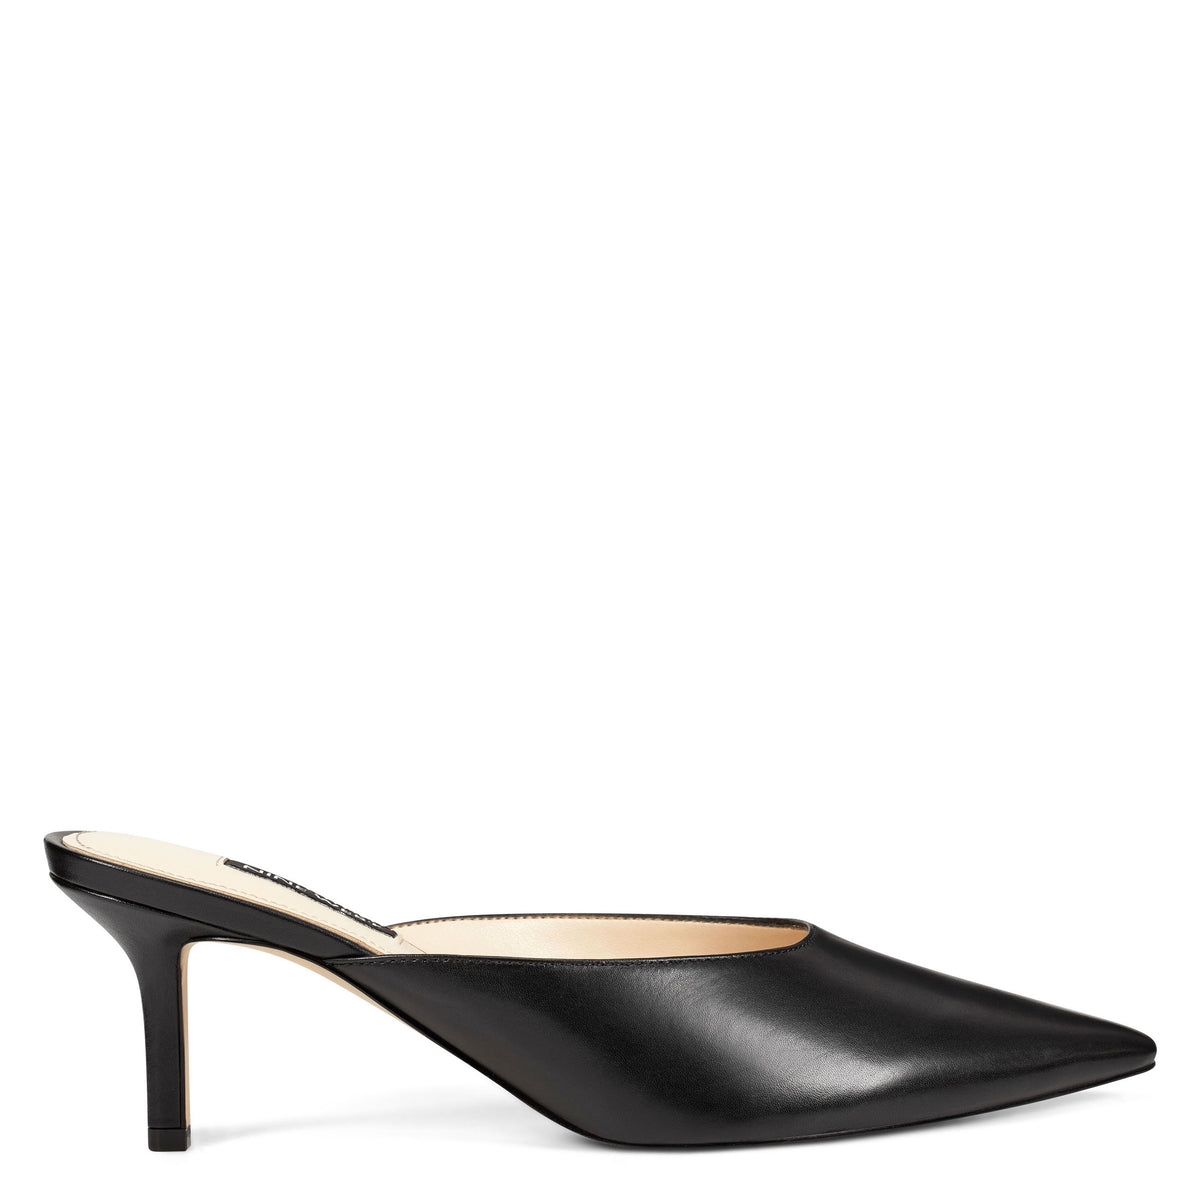 ali-pointy-toe-mules-in-black-leather